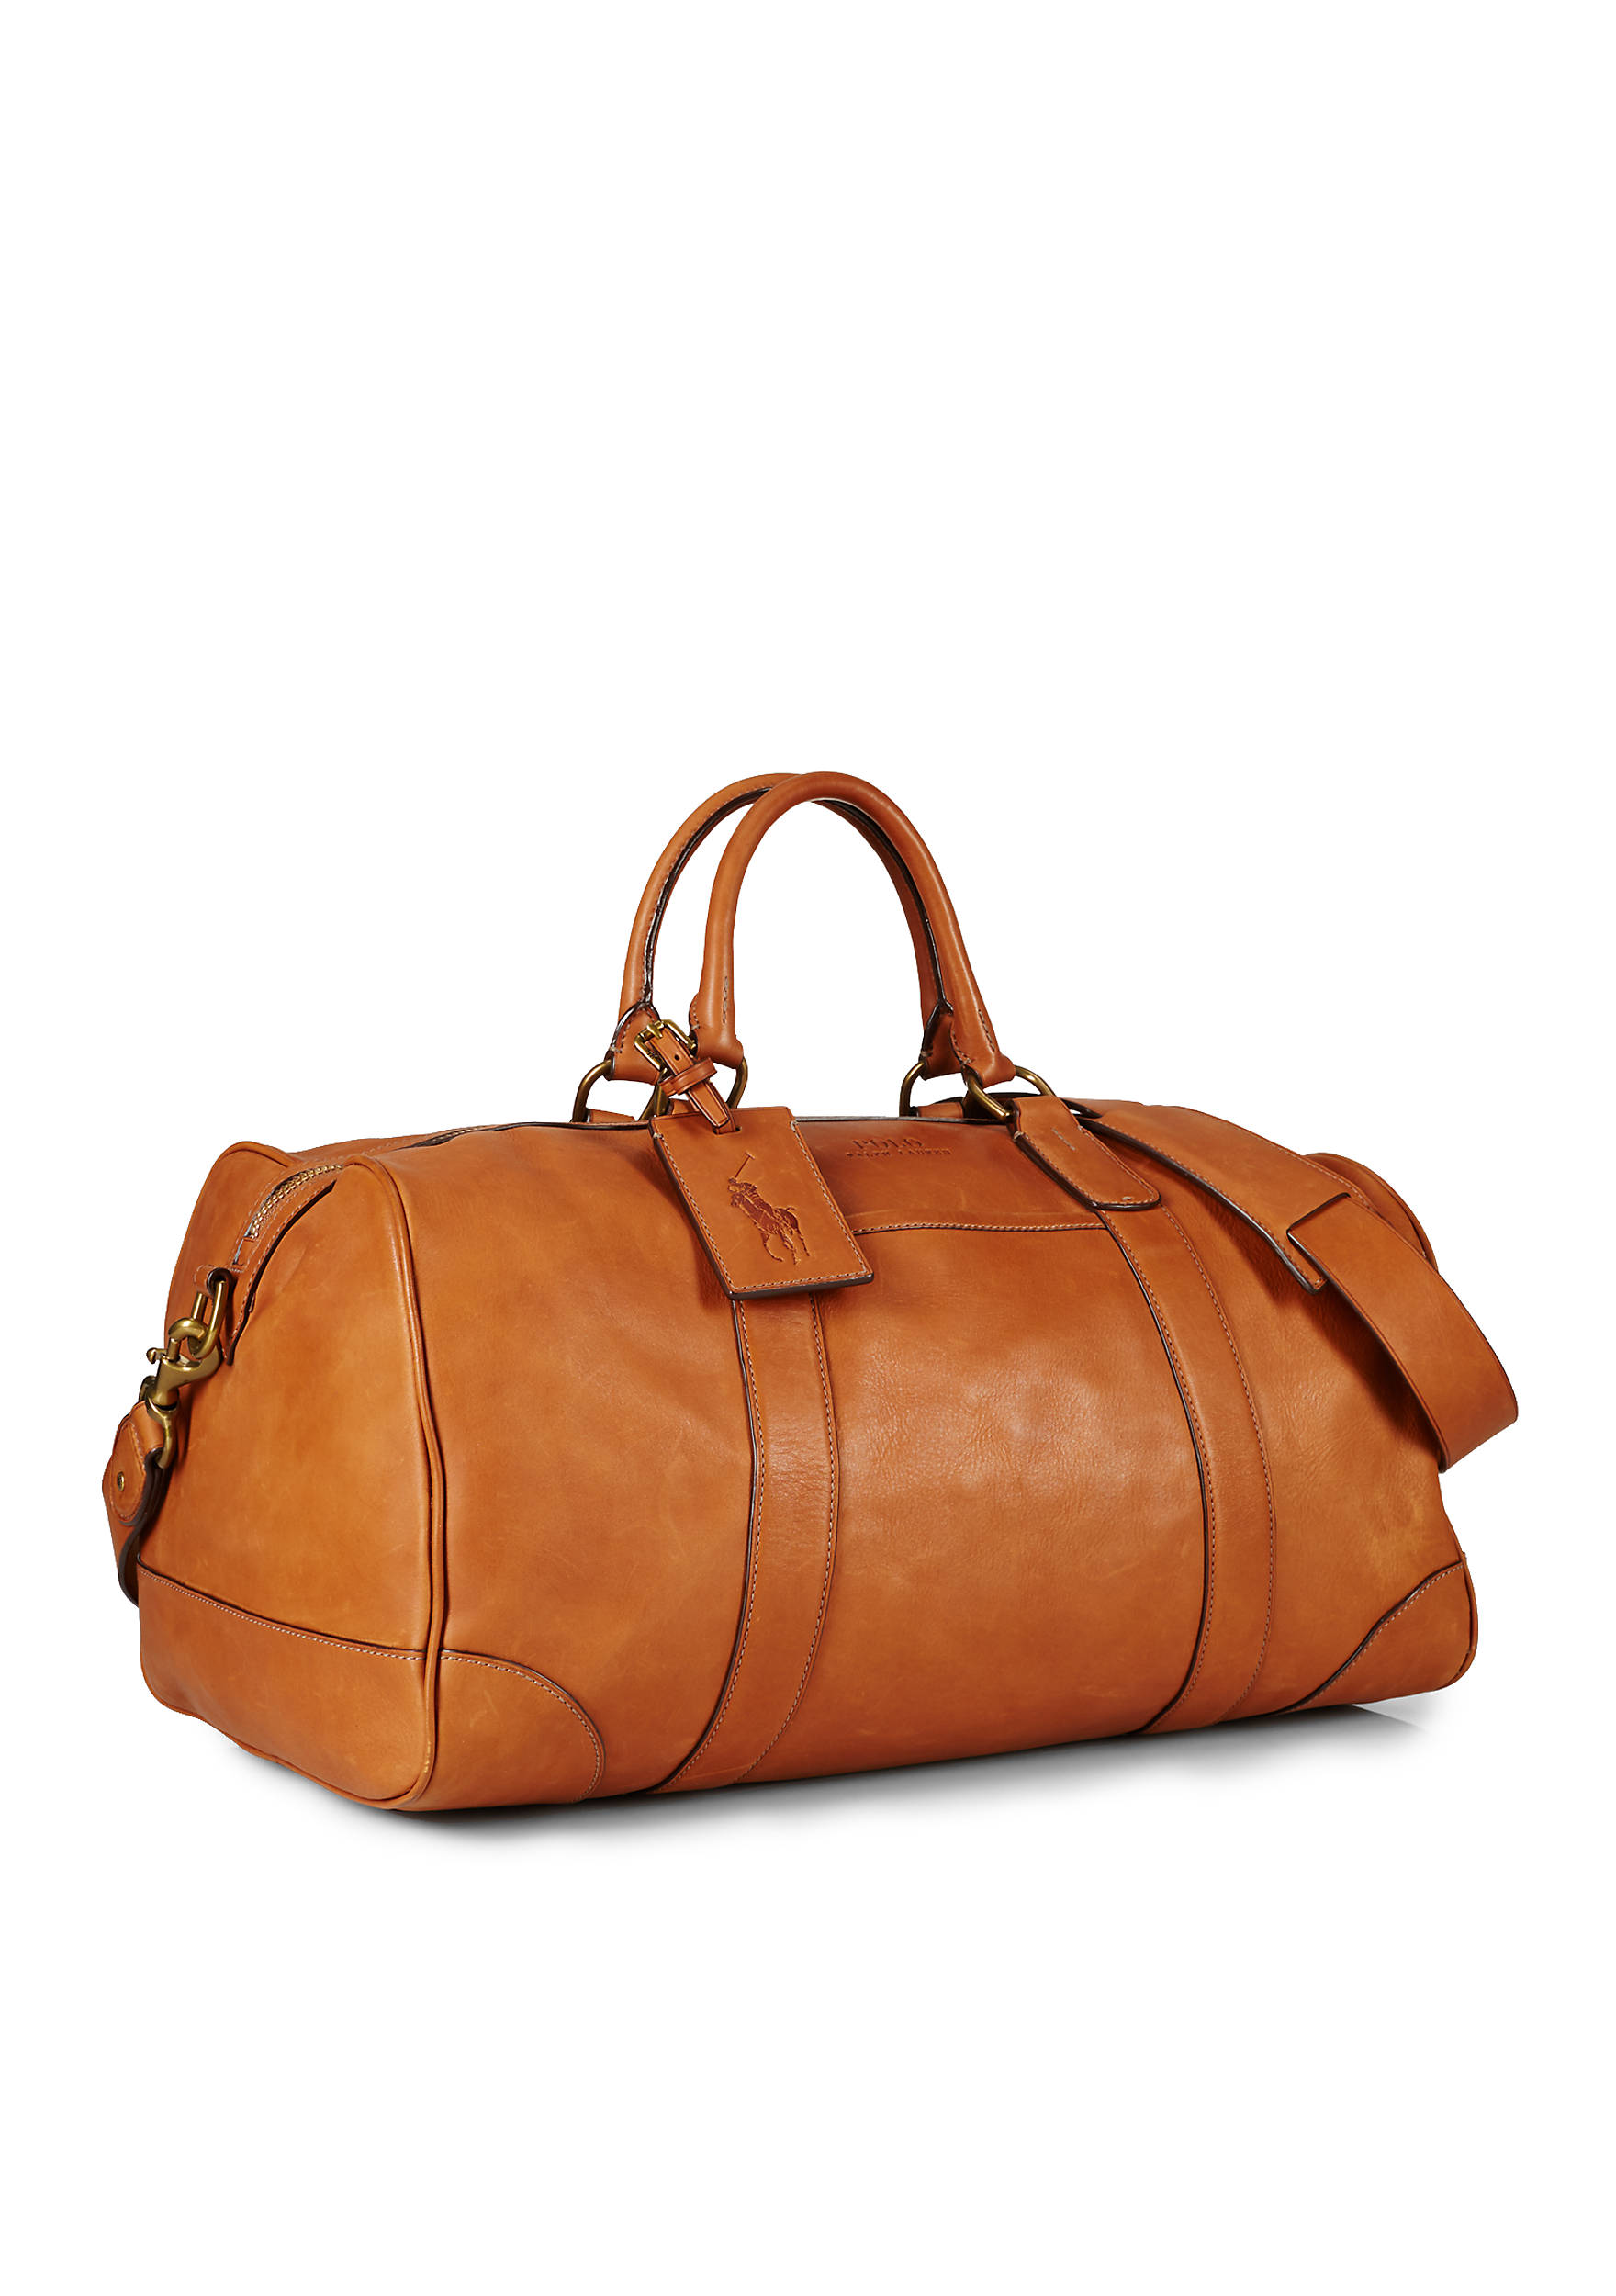 c2bf3de1ba ... gentlemans leather canvas weekender duffle bag 569eb b0903  netherlands polo  ralph lauren leather duffel bag leather duffel bag. prev next 7ce45 57f4d